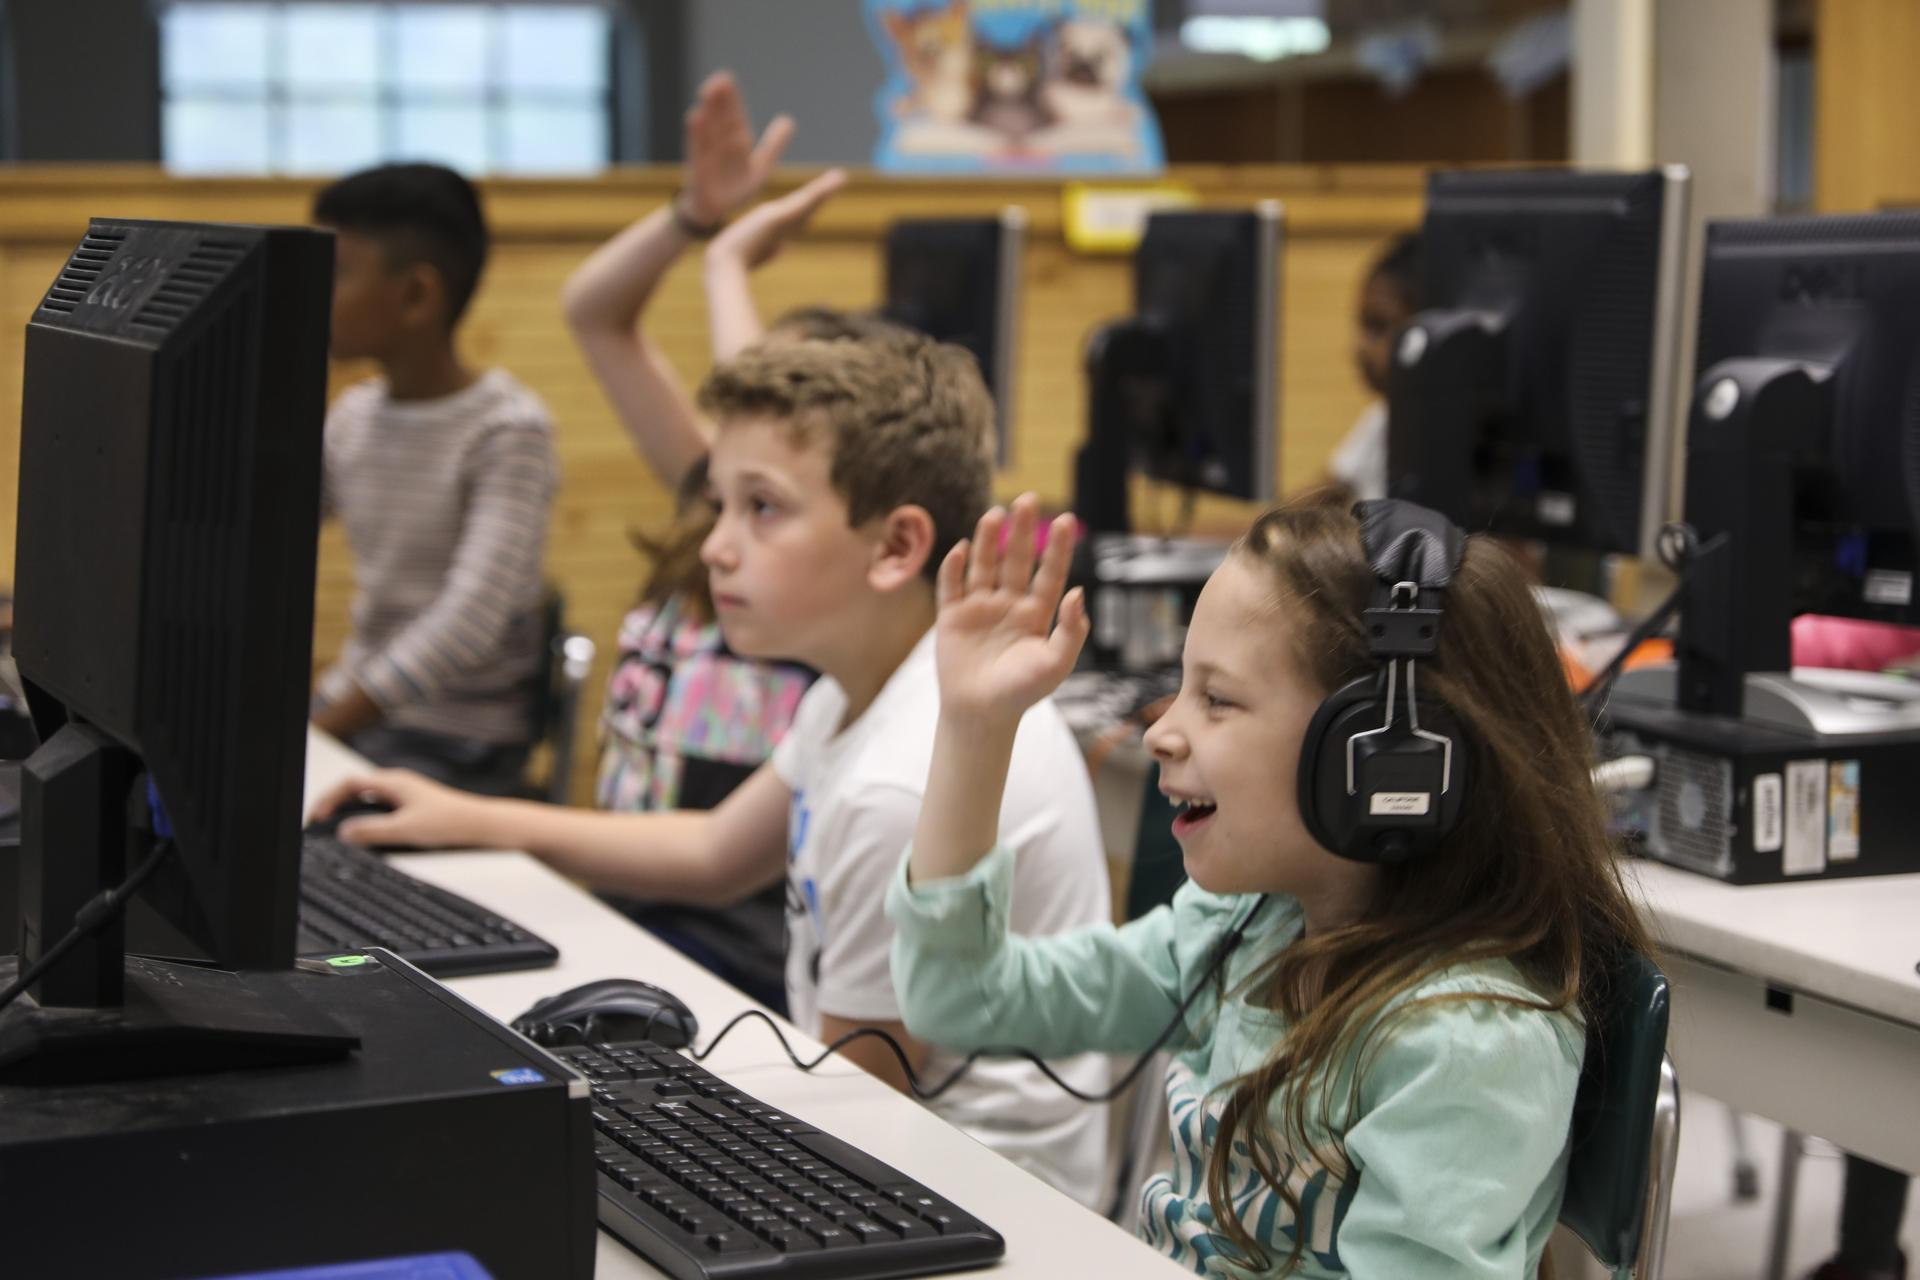 Hop Brook Elementary School students working on computers in a computer lab